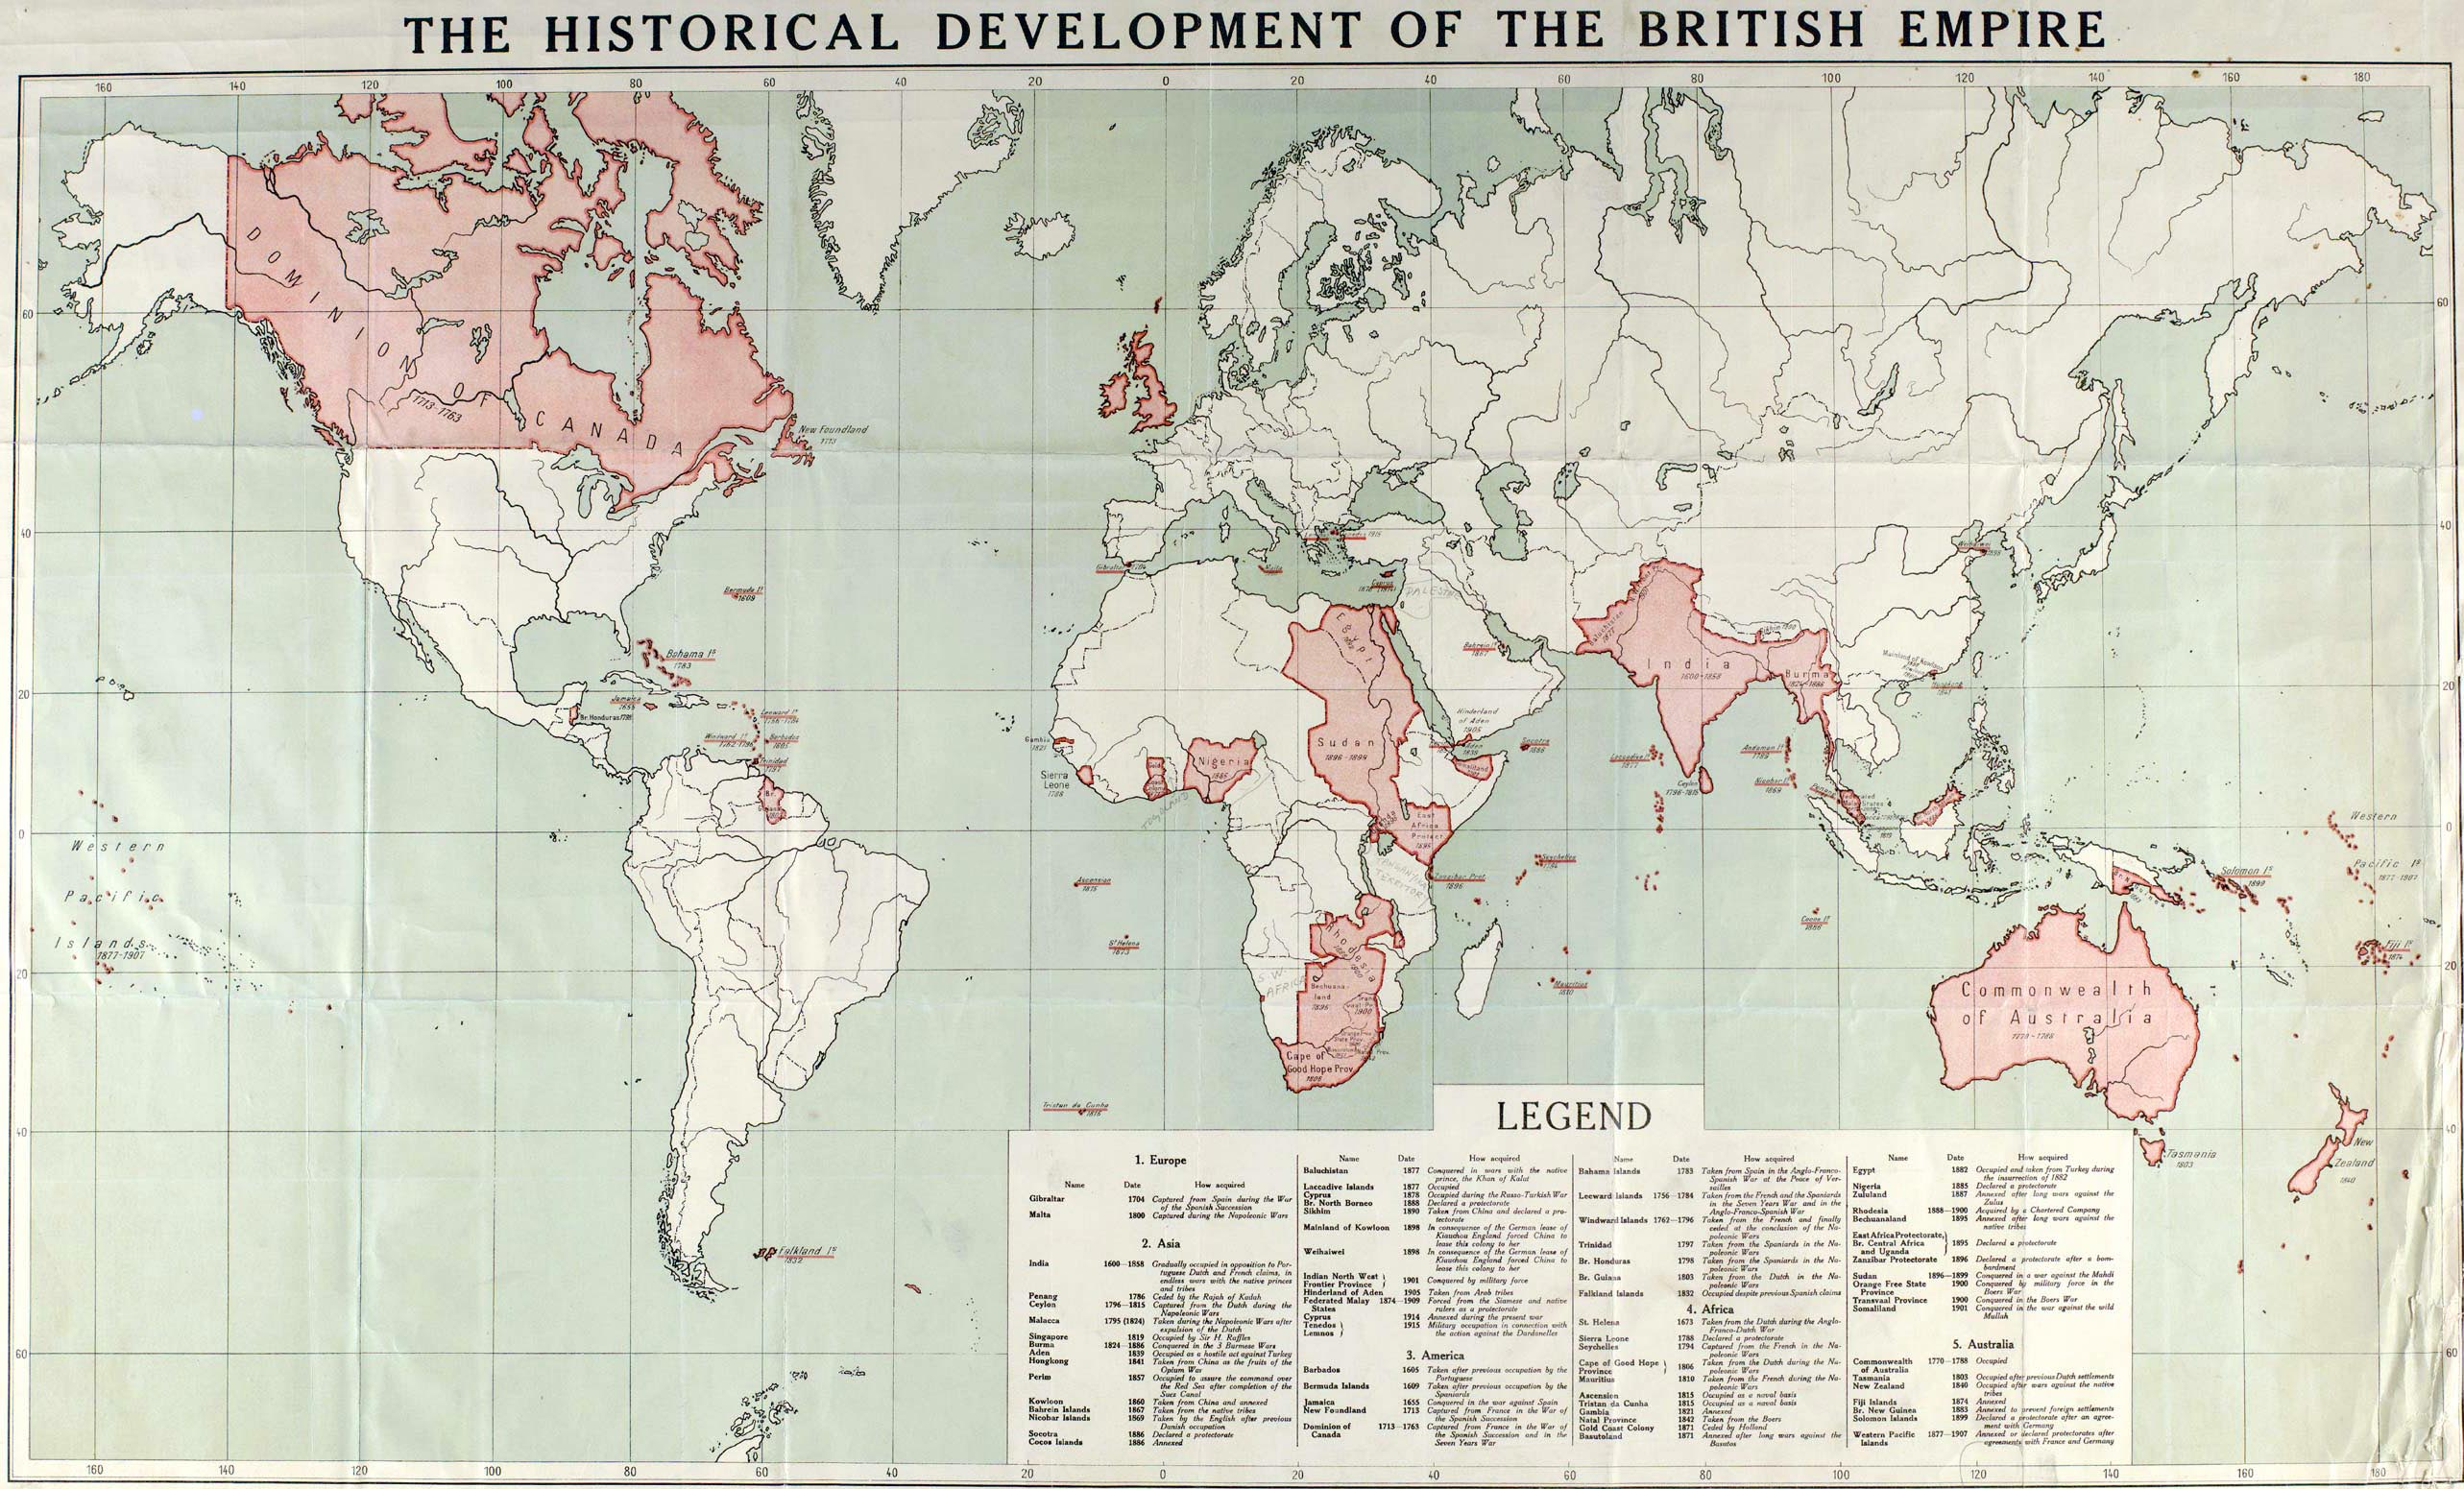 British Empire, essay help?